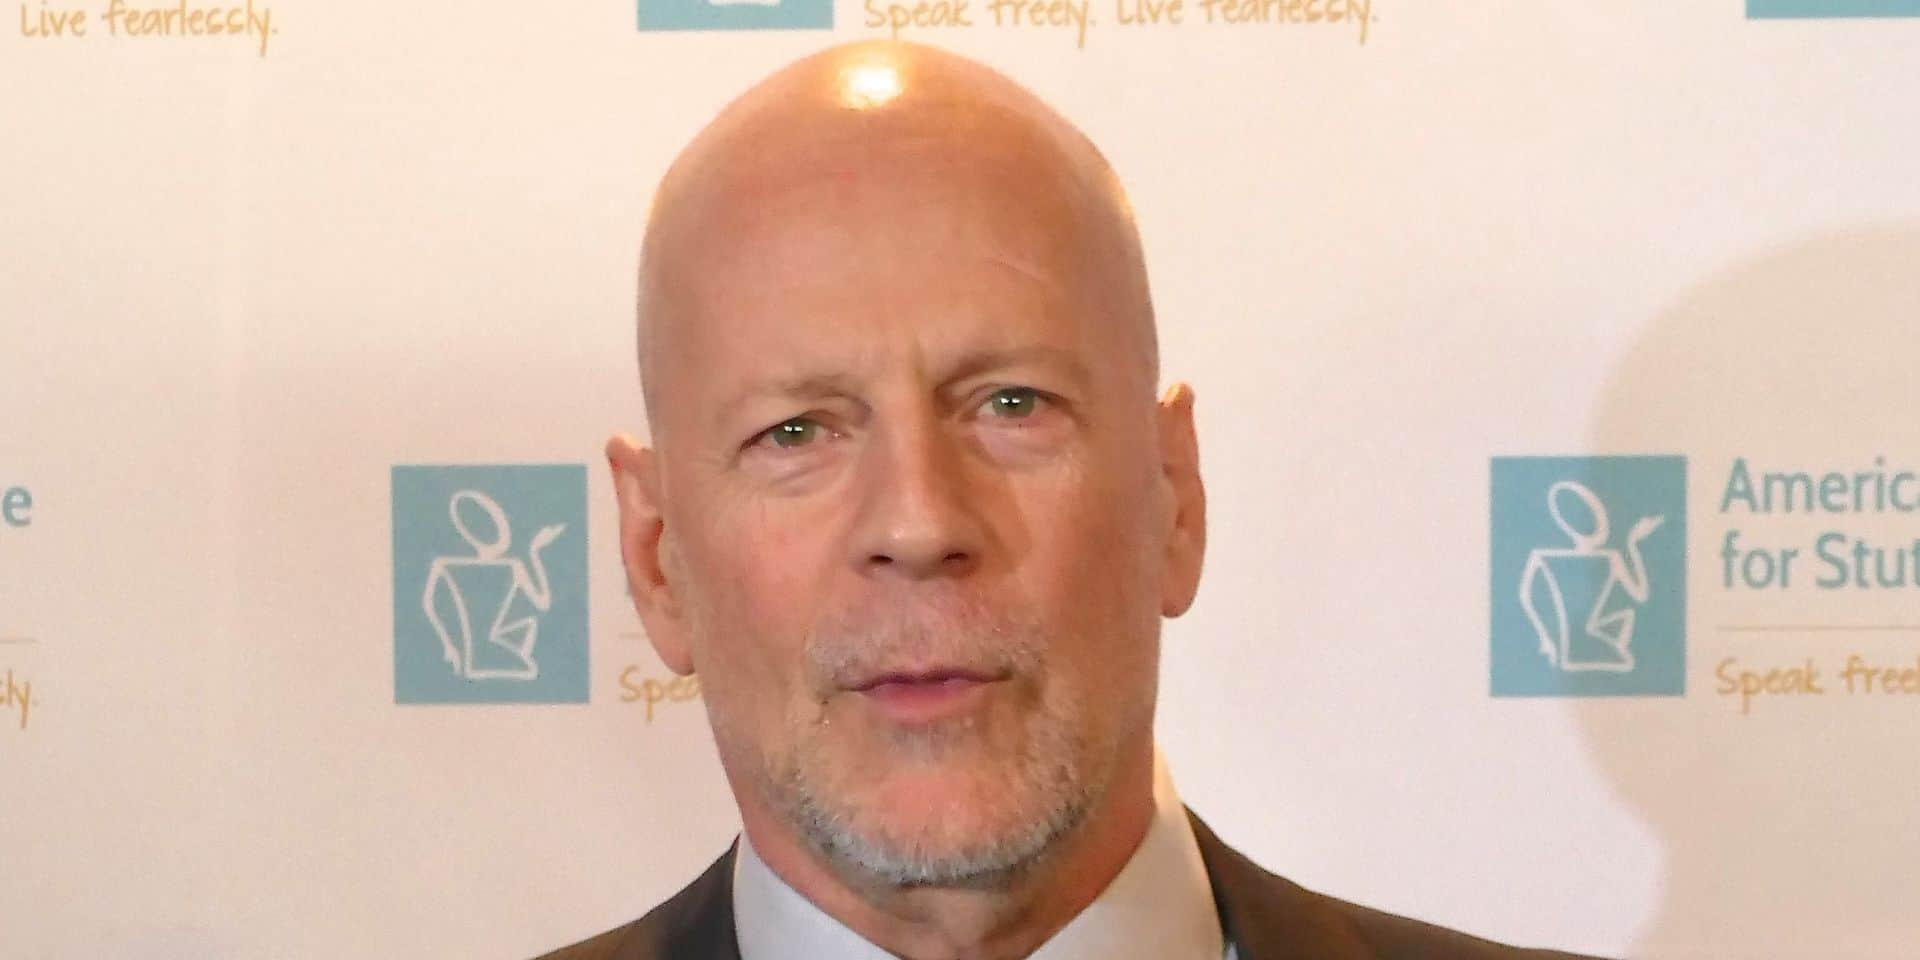 Bruce Willis receives 'stuttering prize' in New York